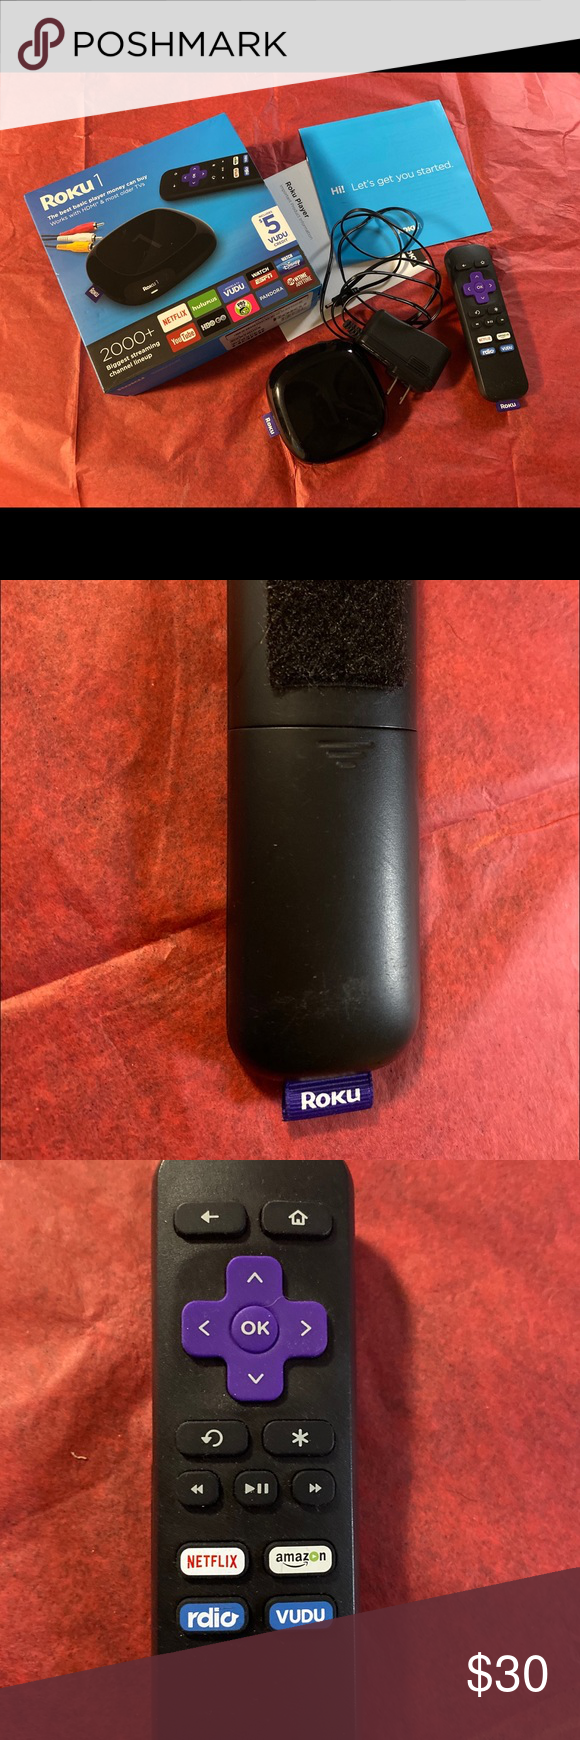 Roku 1 streaming media player used (With images) Amazon